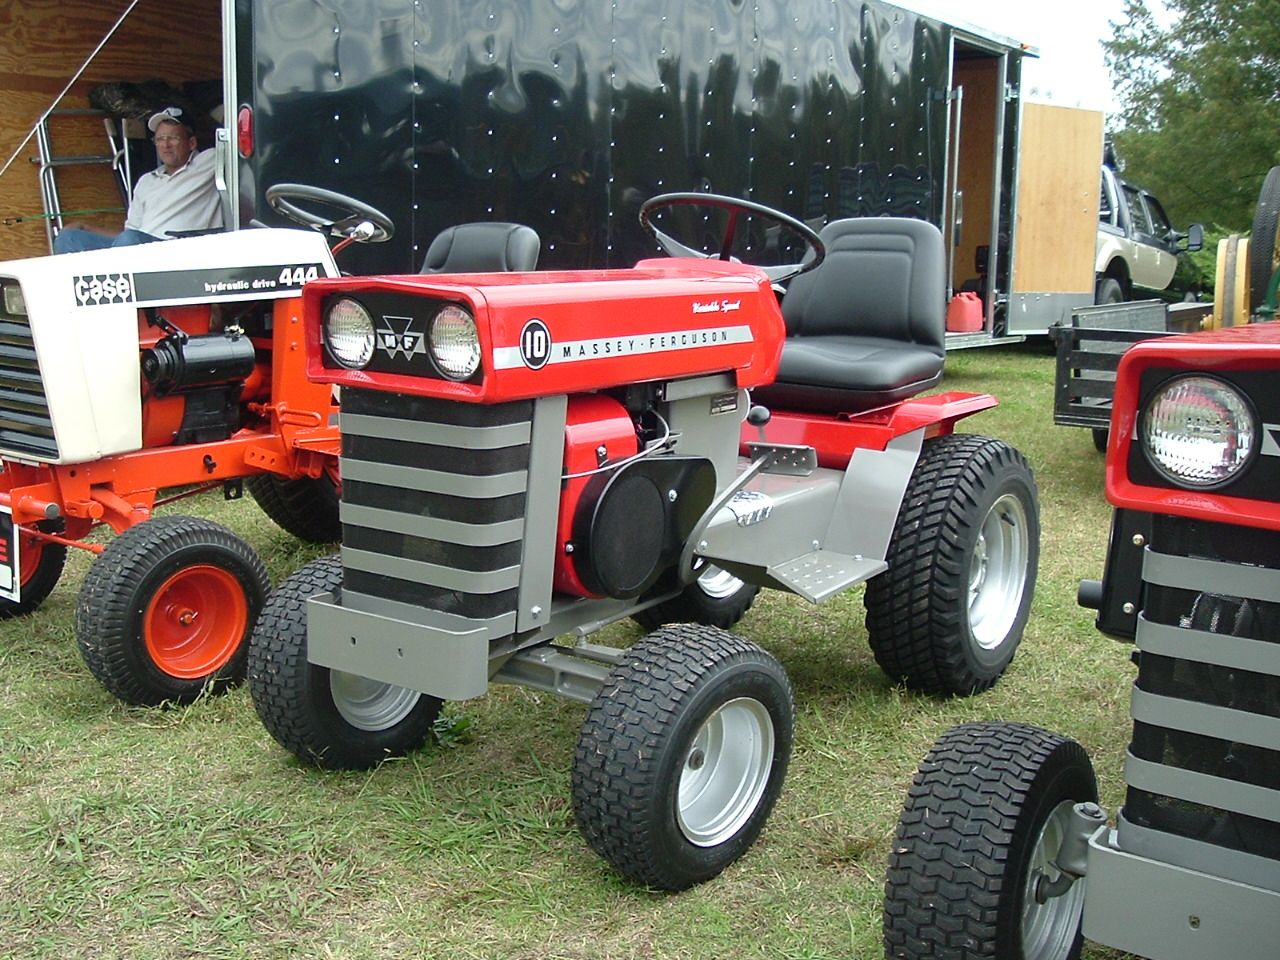 Massey Ferguson 10 Lawn And Garden Antique Tractors Pinterest Lawn Tractor And Antique